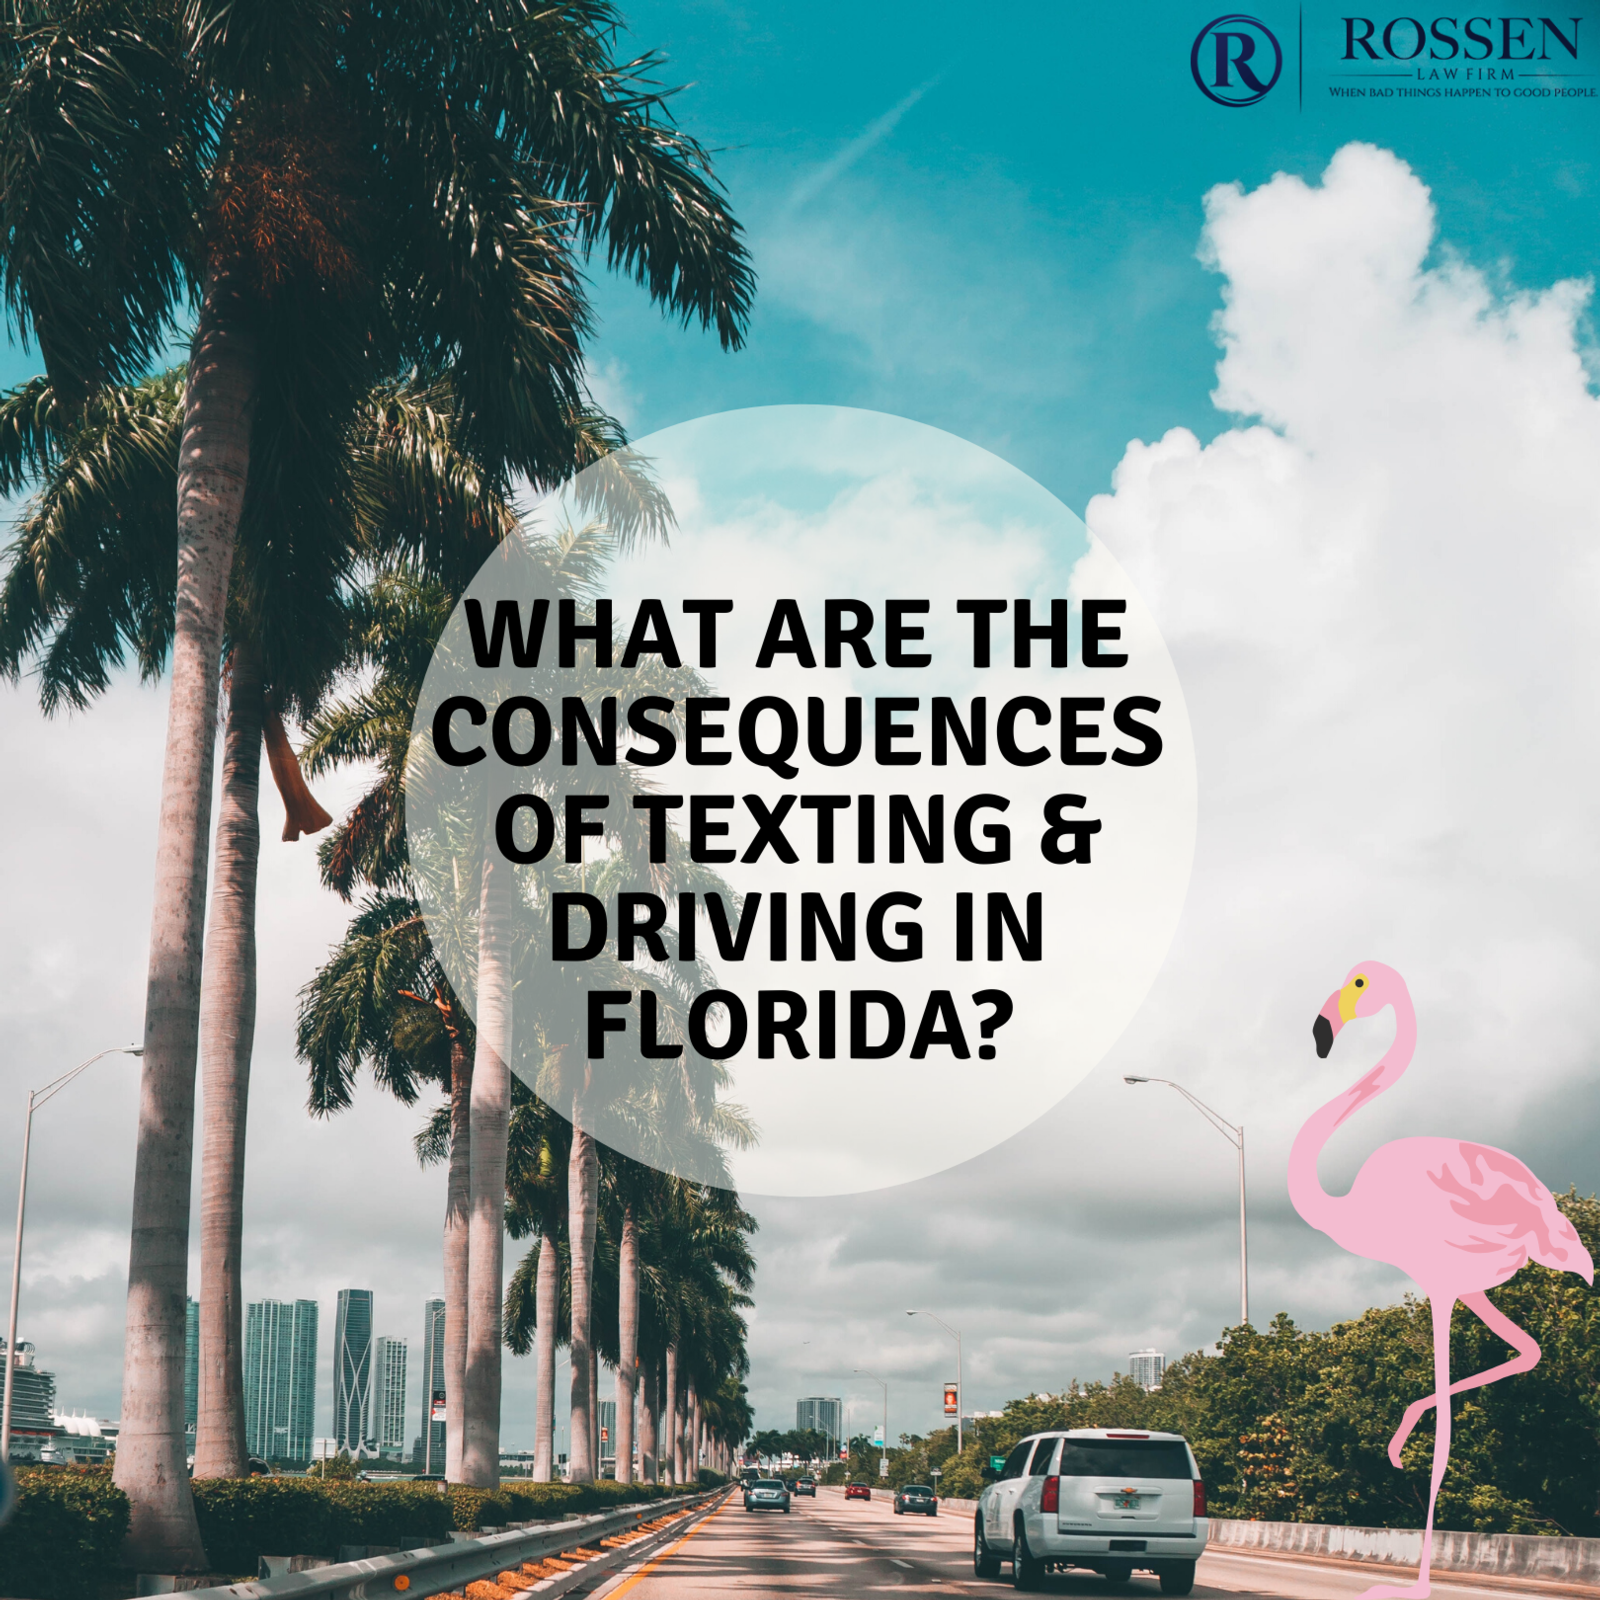 What are the consequences of texting & driving in Florida?